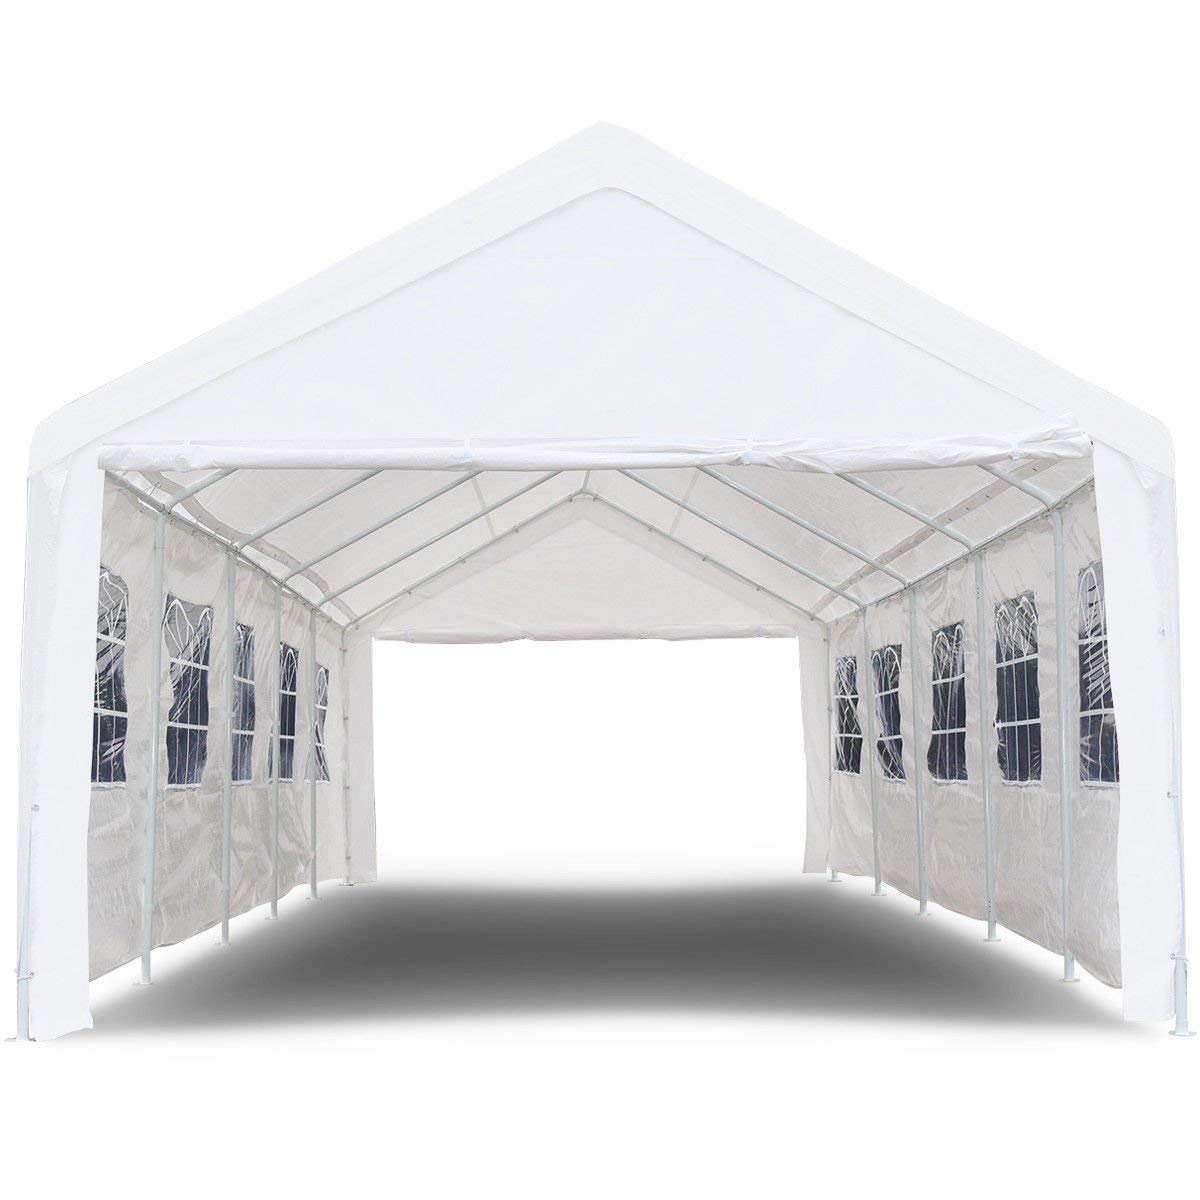 TANGKULA 10' x 20' Carport Canopy Tent Outdoor Garden Garage Party Wedding Tent Instant Shelter Versatile Shelter Sidewalls Waterproof Heavy Duty Car Canopy 8 Steel Legs, White AM1696HM